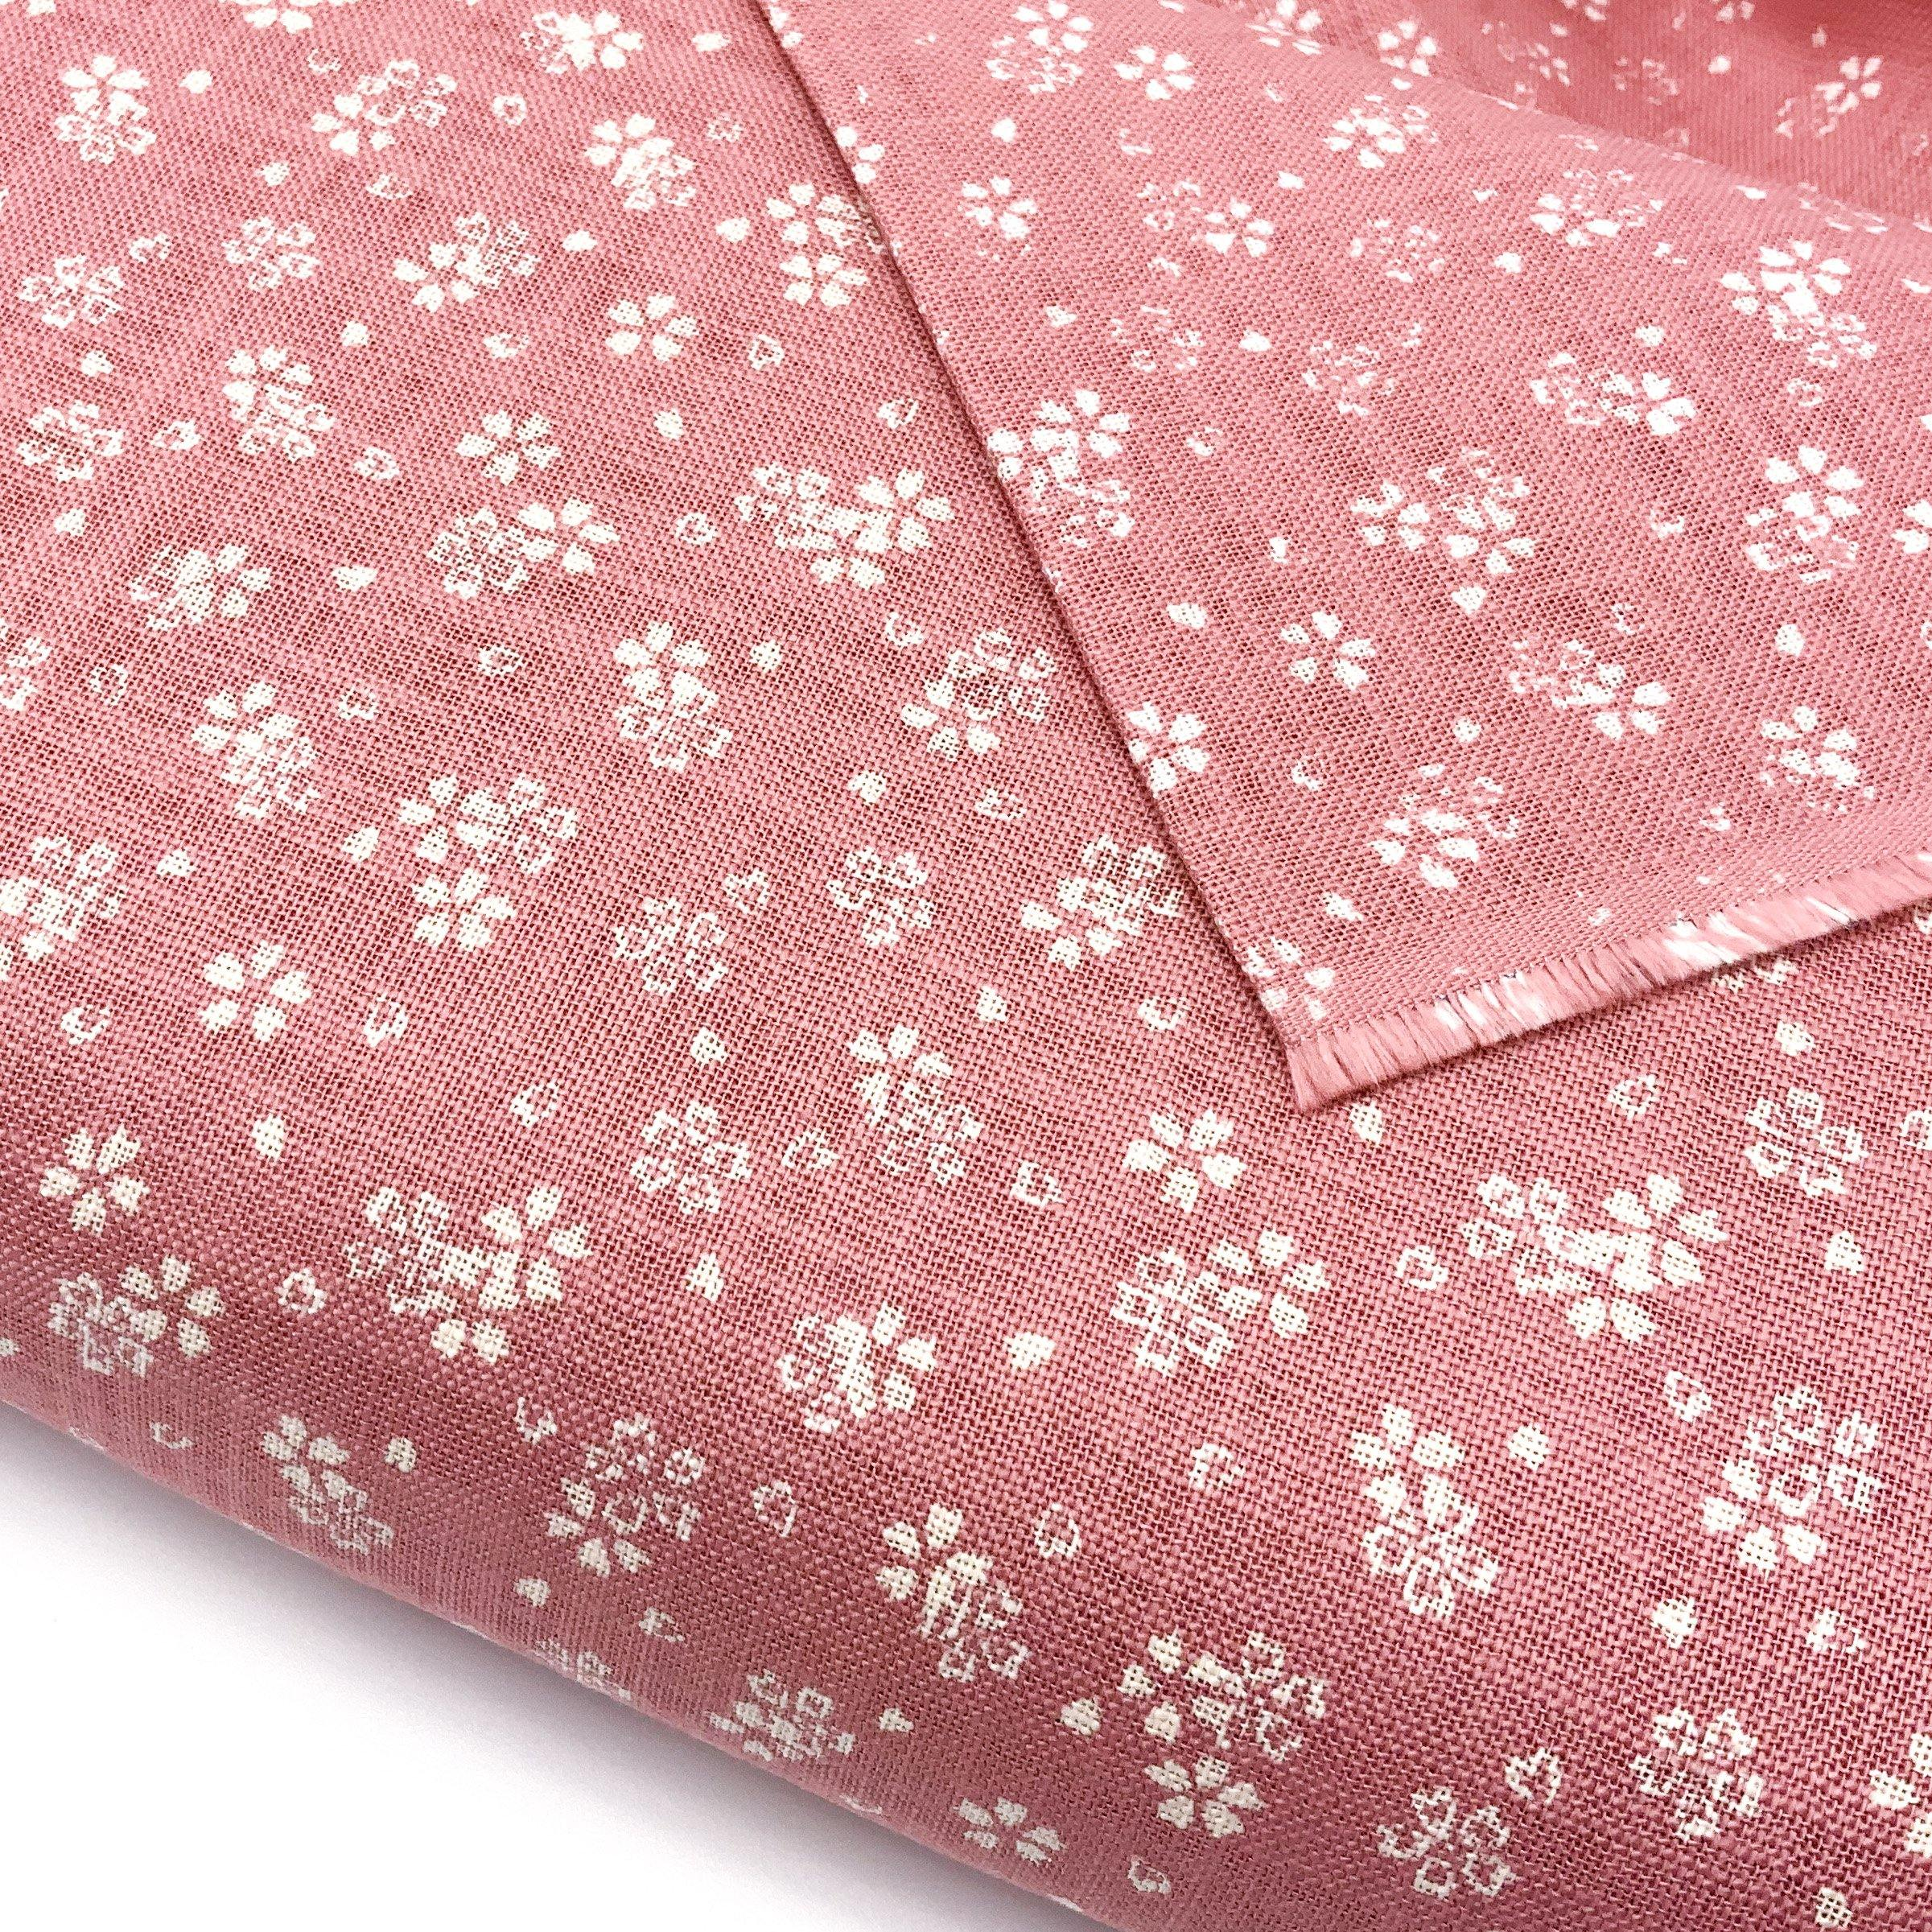 Japanese Cotton Uneven Yarns Sheeting Print - Cherry Blossoms Pink - Earth Indigo